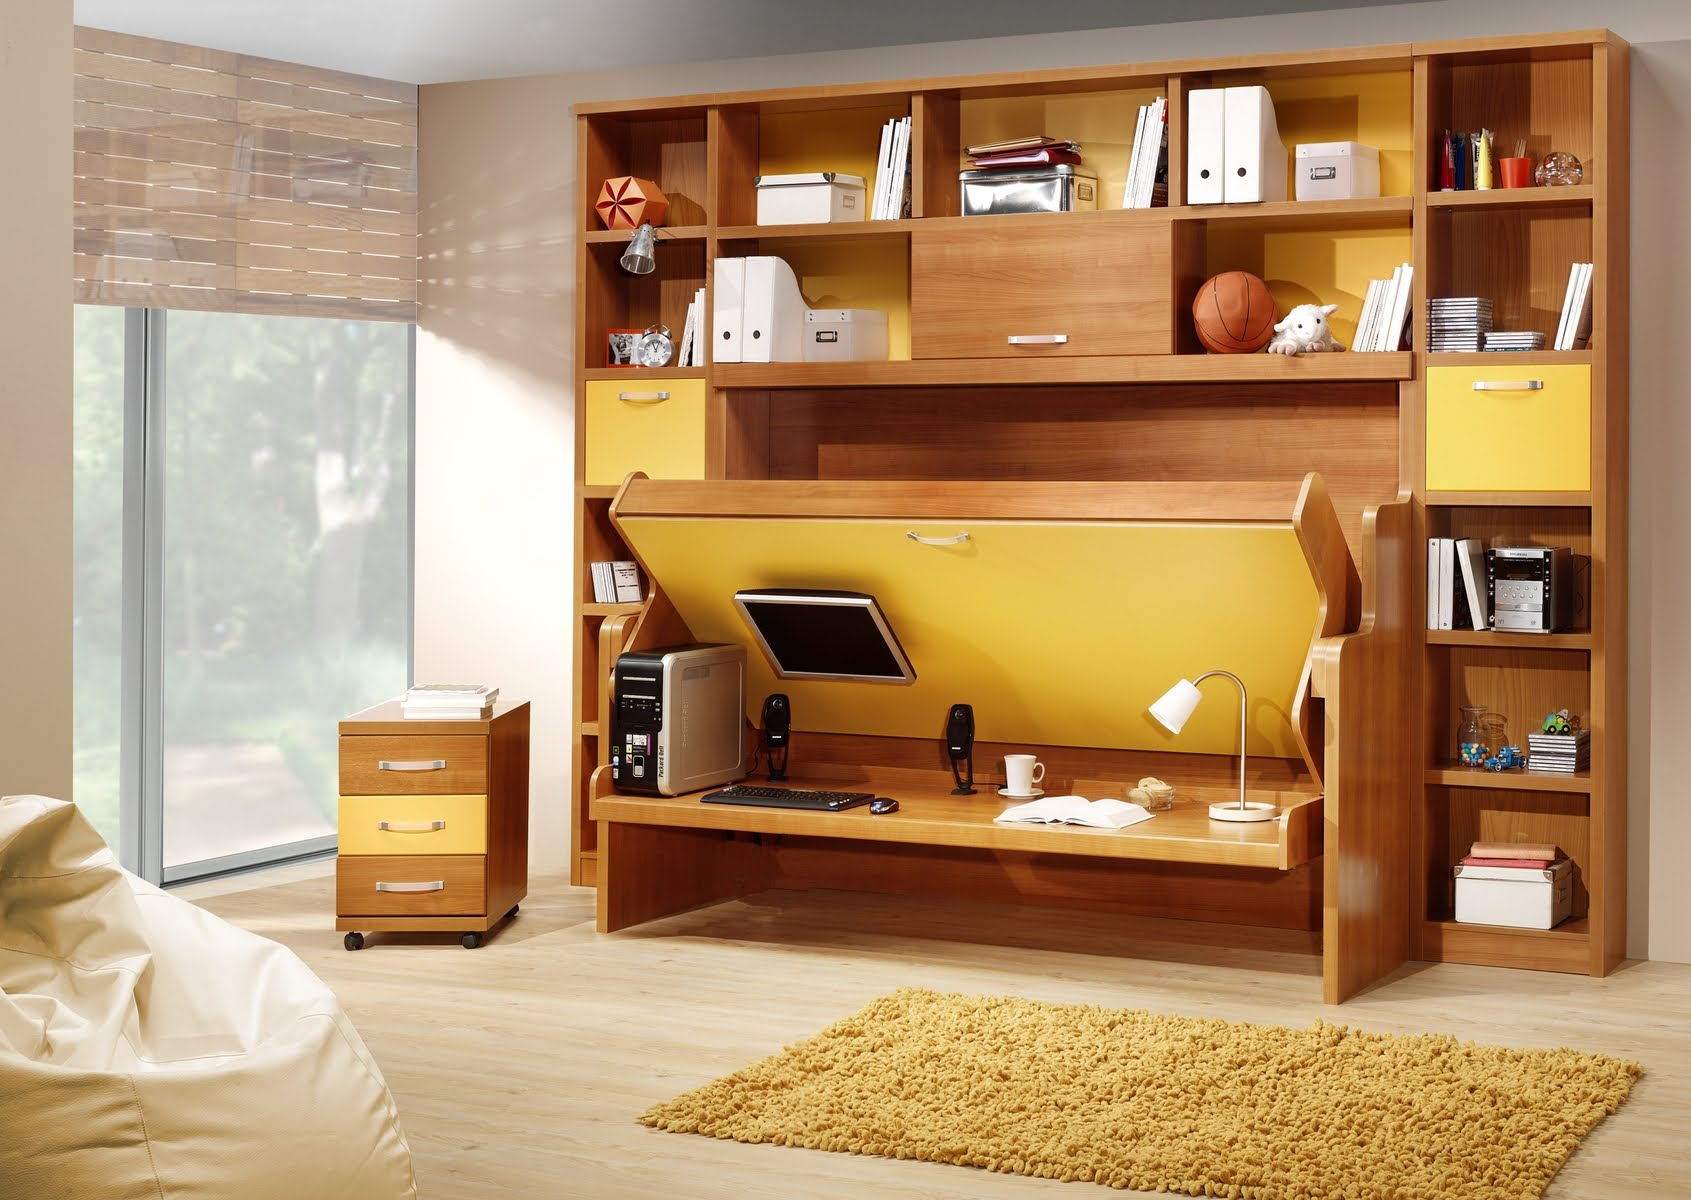 Wooden Reversible Bed on High Oak Shelves for Small Room Ideas with Brown Carpet Rug